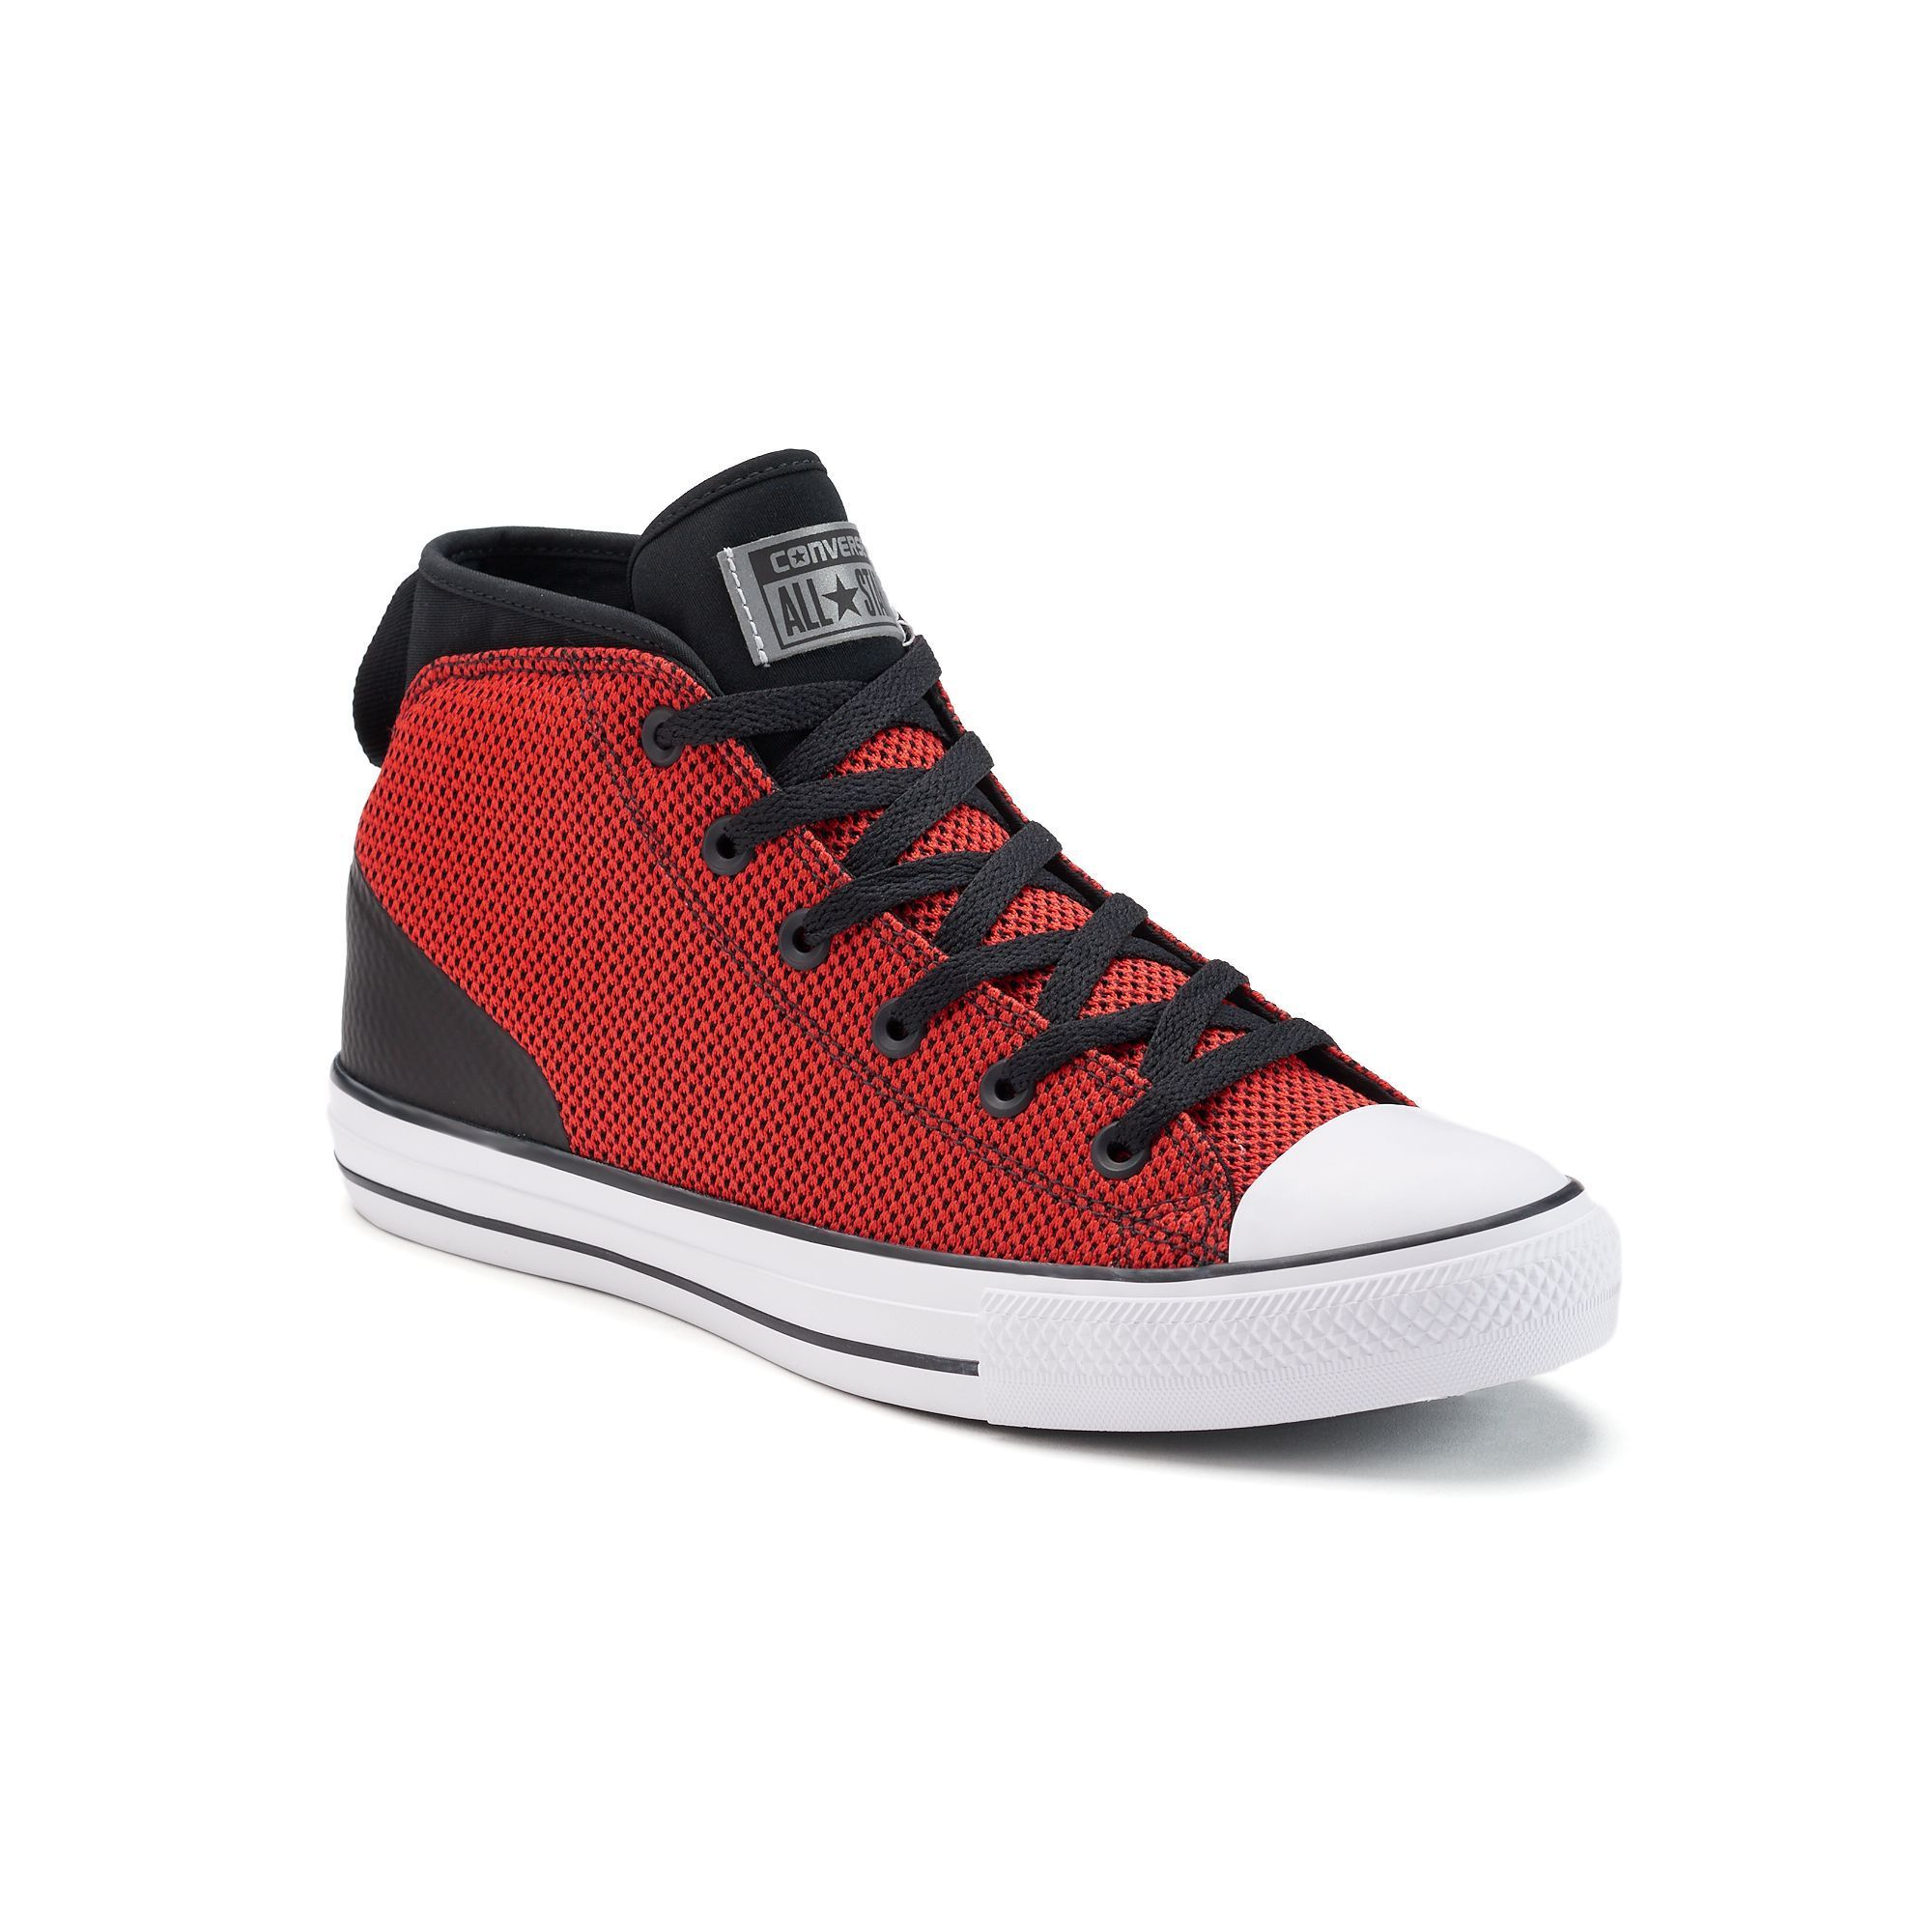 Converse All Star Hi - Men's Charcoal - Casual MK20885419